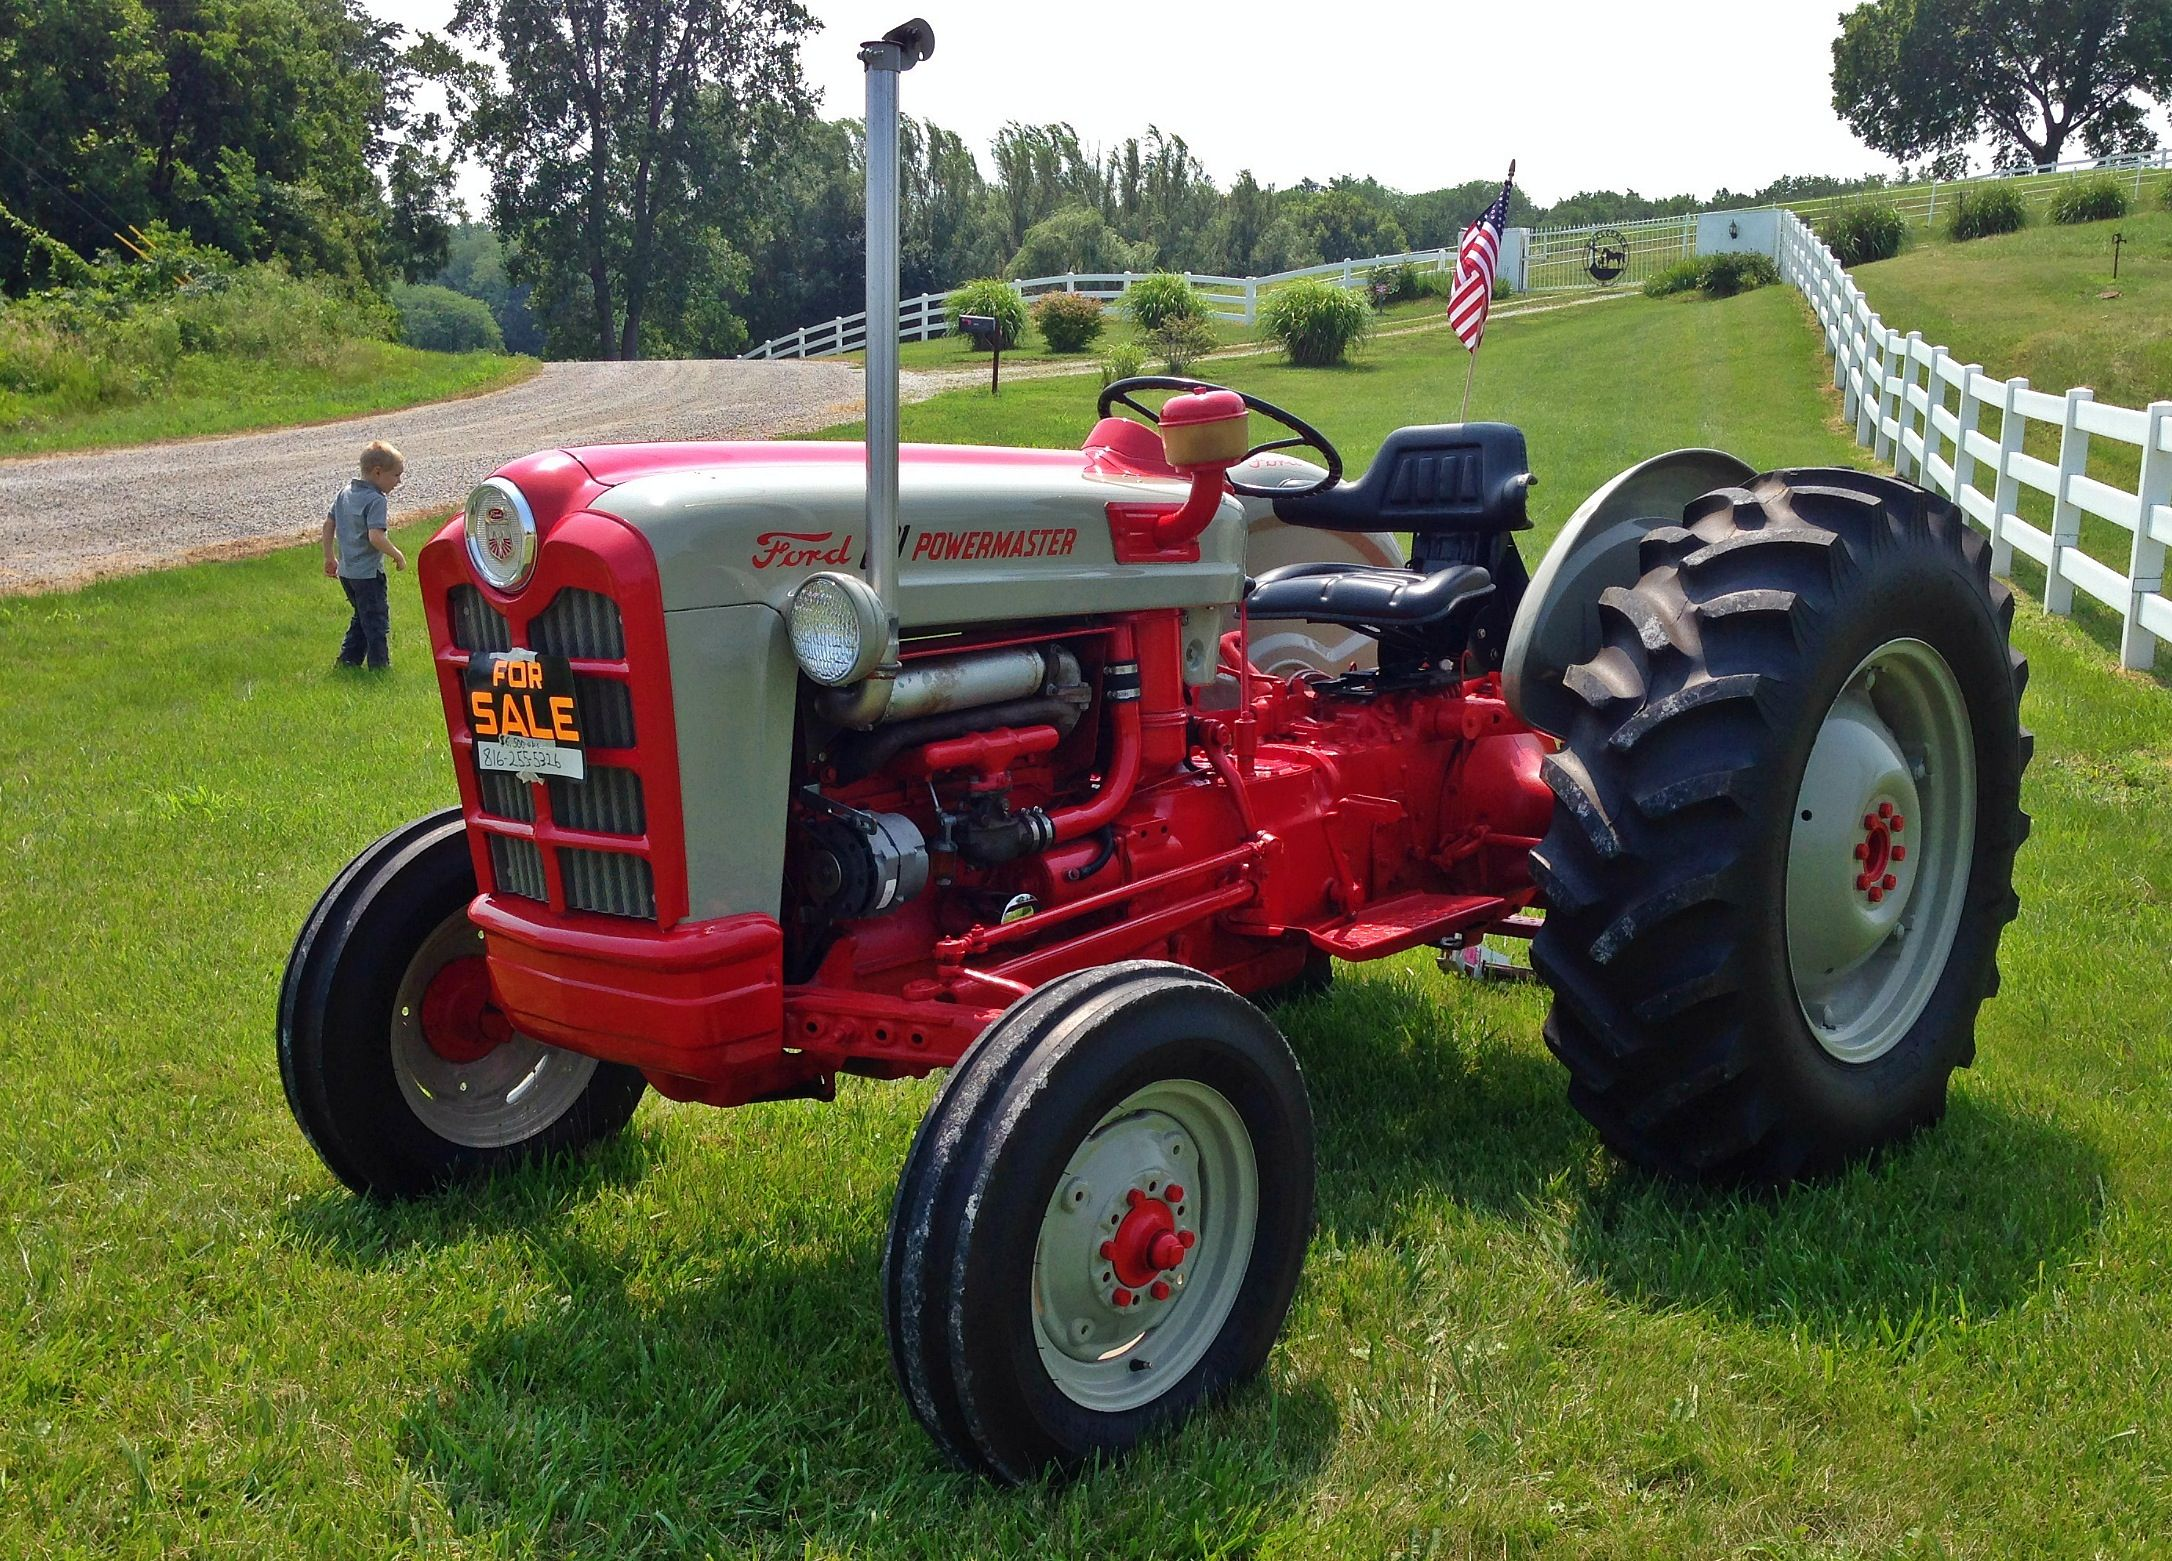 Ford 801 Master 861 Tractors Re Antique Cars Tractor